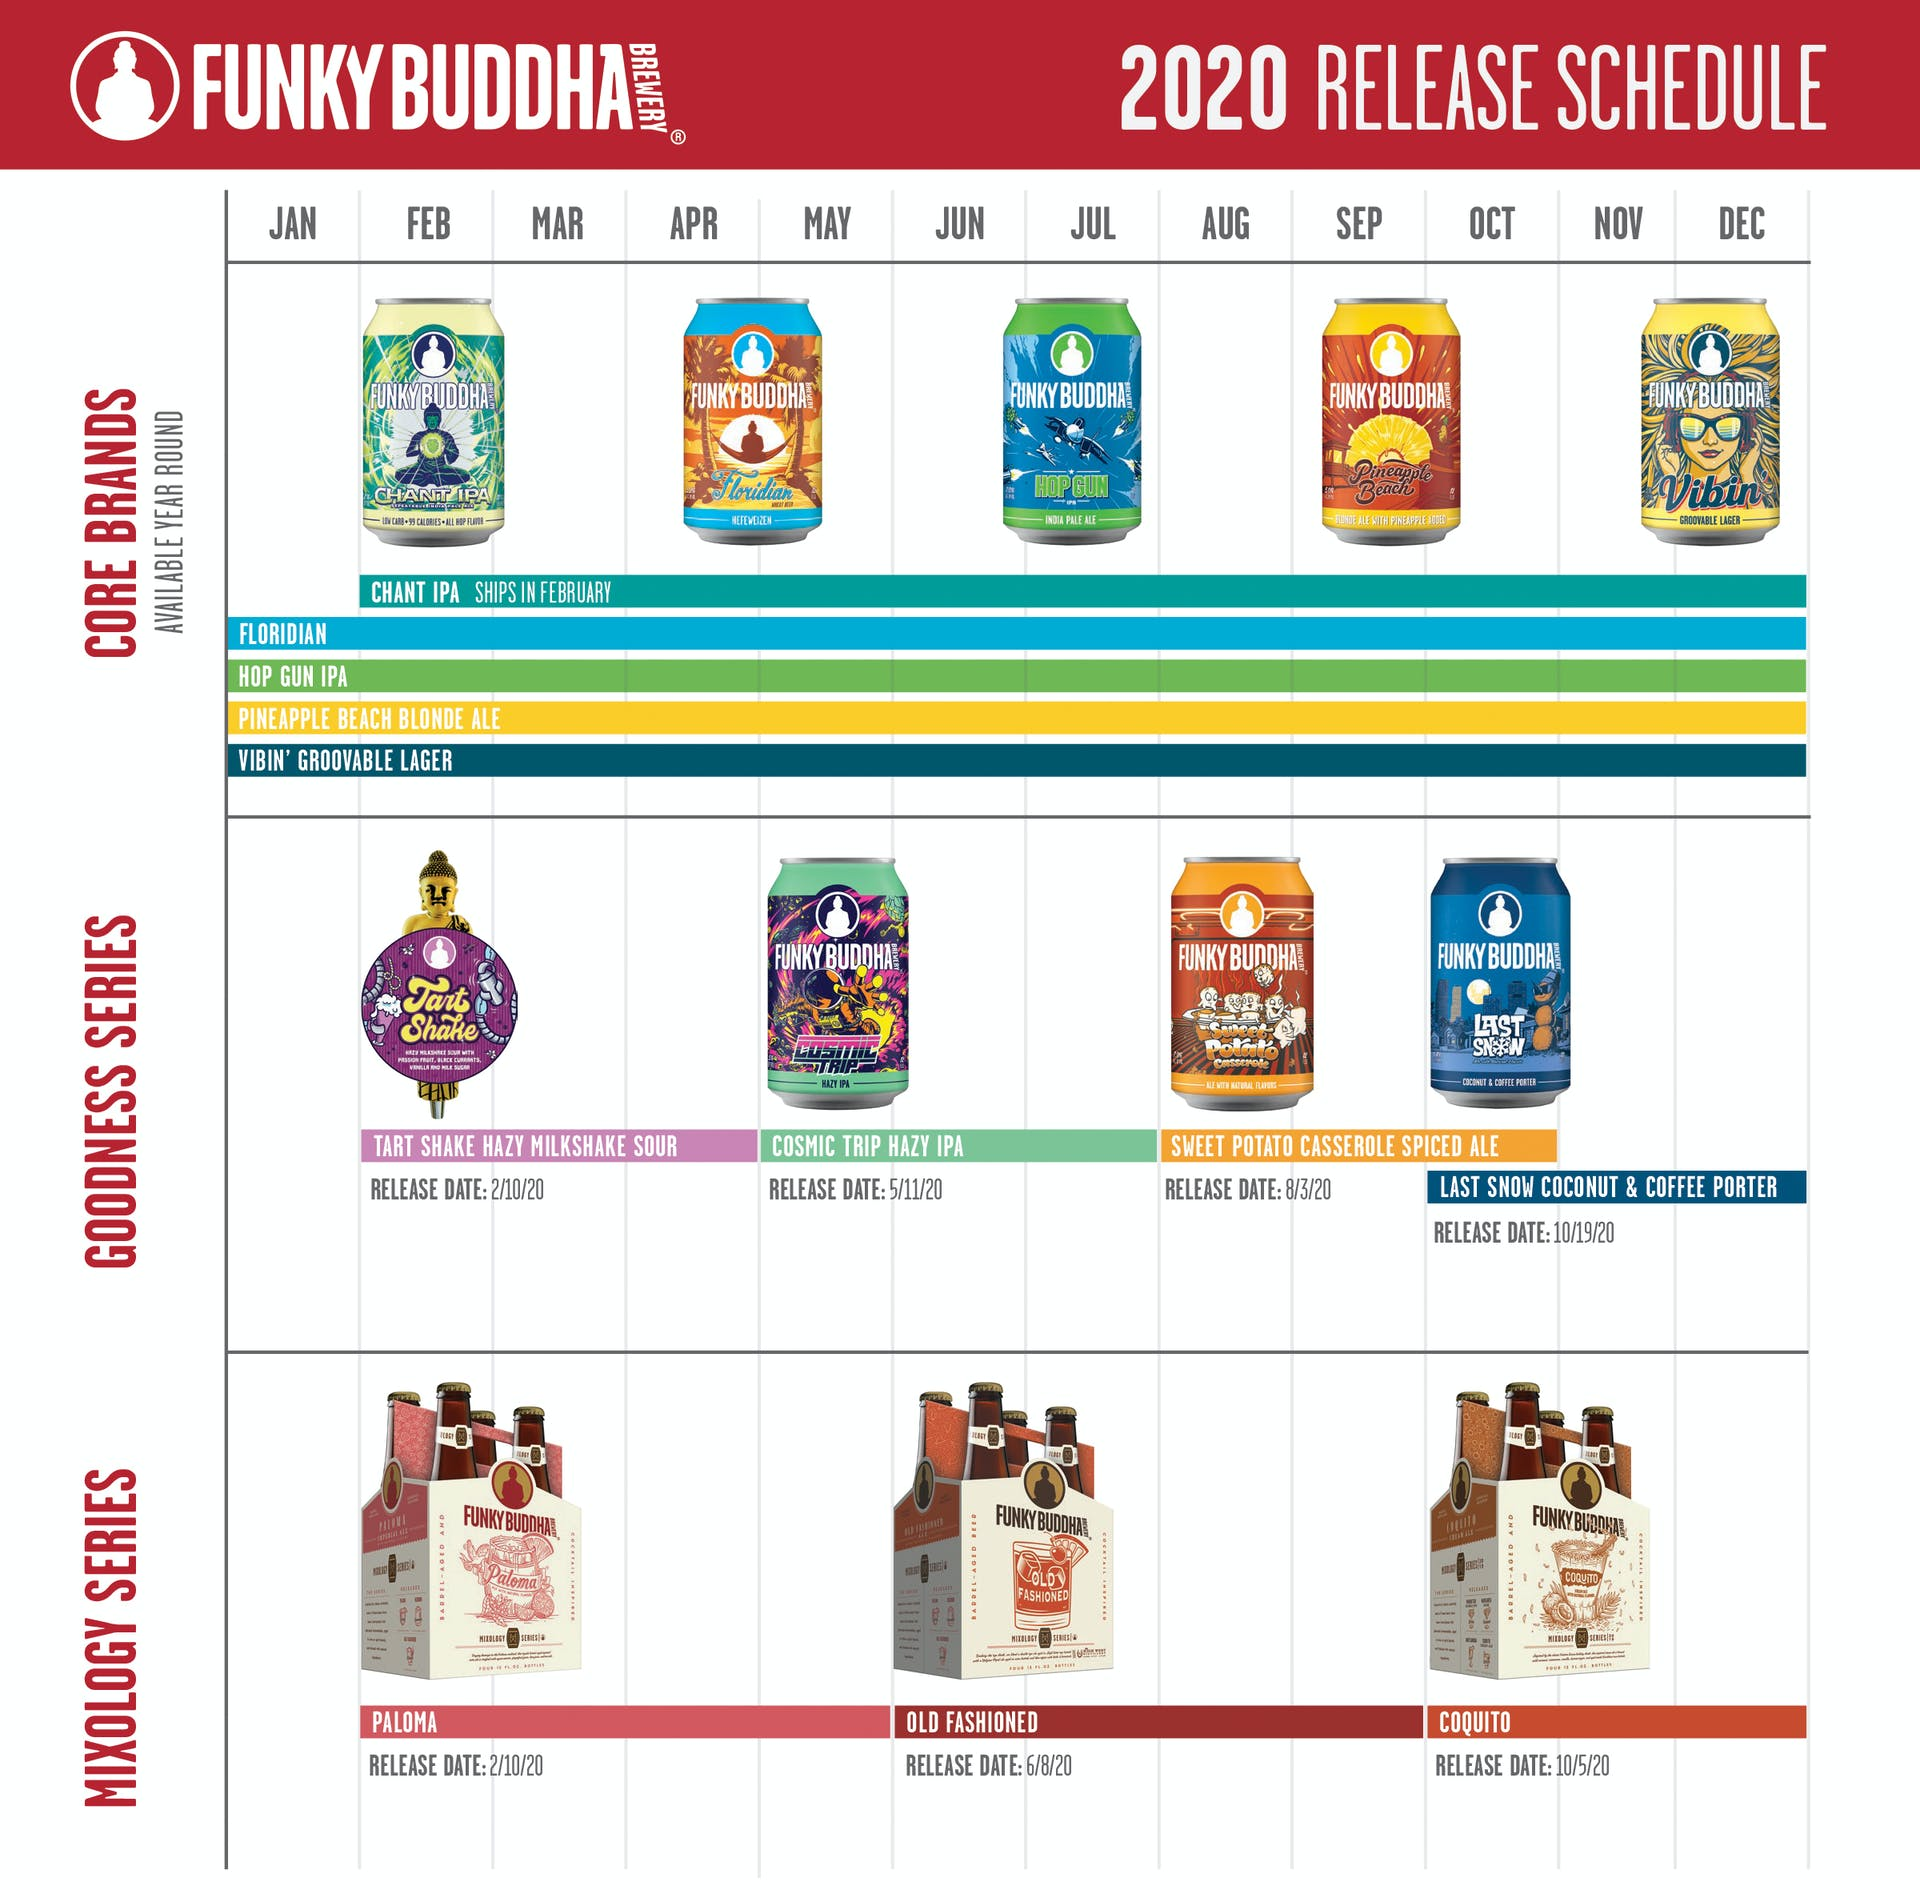 Funky Buddha Brewery 2020 Release Schedule. Core Brands Available Year Round are Floridian, Hop Gun IPA, Pineapple Beach Blonde Ale, Vibin' Groovable Lager, and Change IPA. Goodness Series Releases - Tart Shake Hazy Milkshake Sour (2/10/2020), Cosmic Trip Hazy IPA (5/11/2020), Sweet Potato Casserole Spiced Ale (8/13/2020), Last Snow Coconut & Coffee Porter (10/19/2020). Mixology Series Releases - Paloma (2/10/2020), Old Fashioned (6/8/2020), Coquito (10/5/2020)